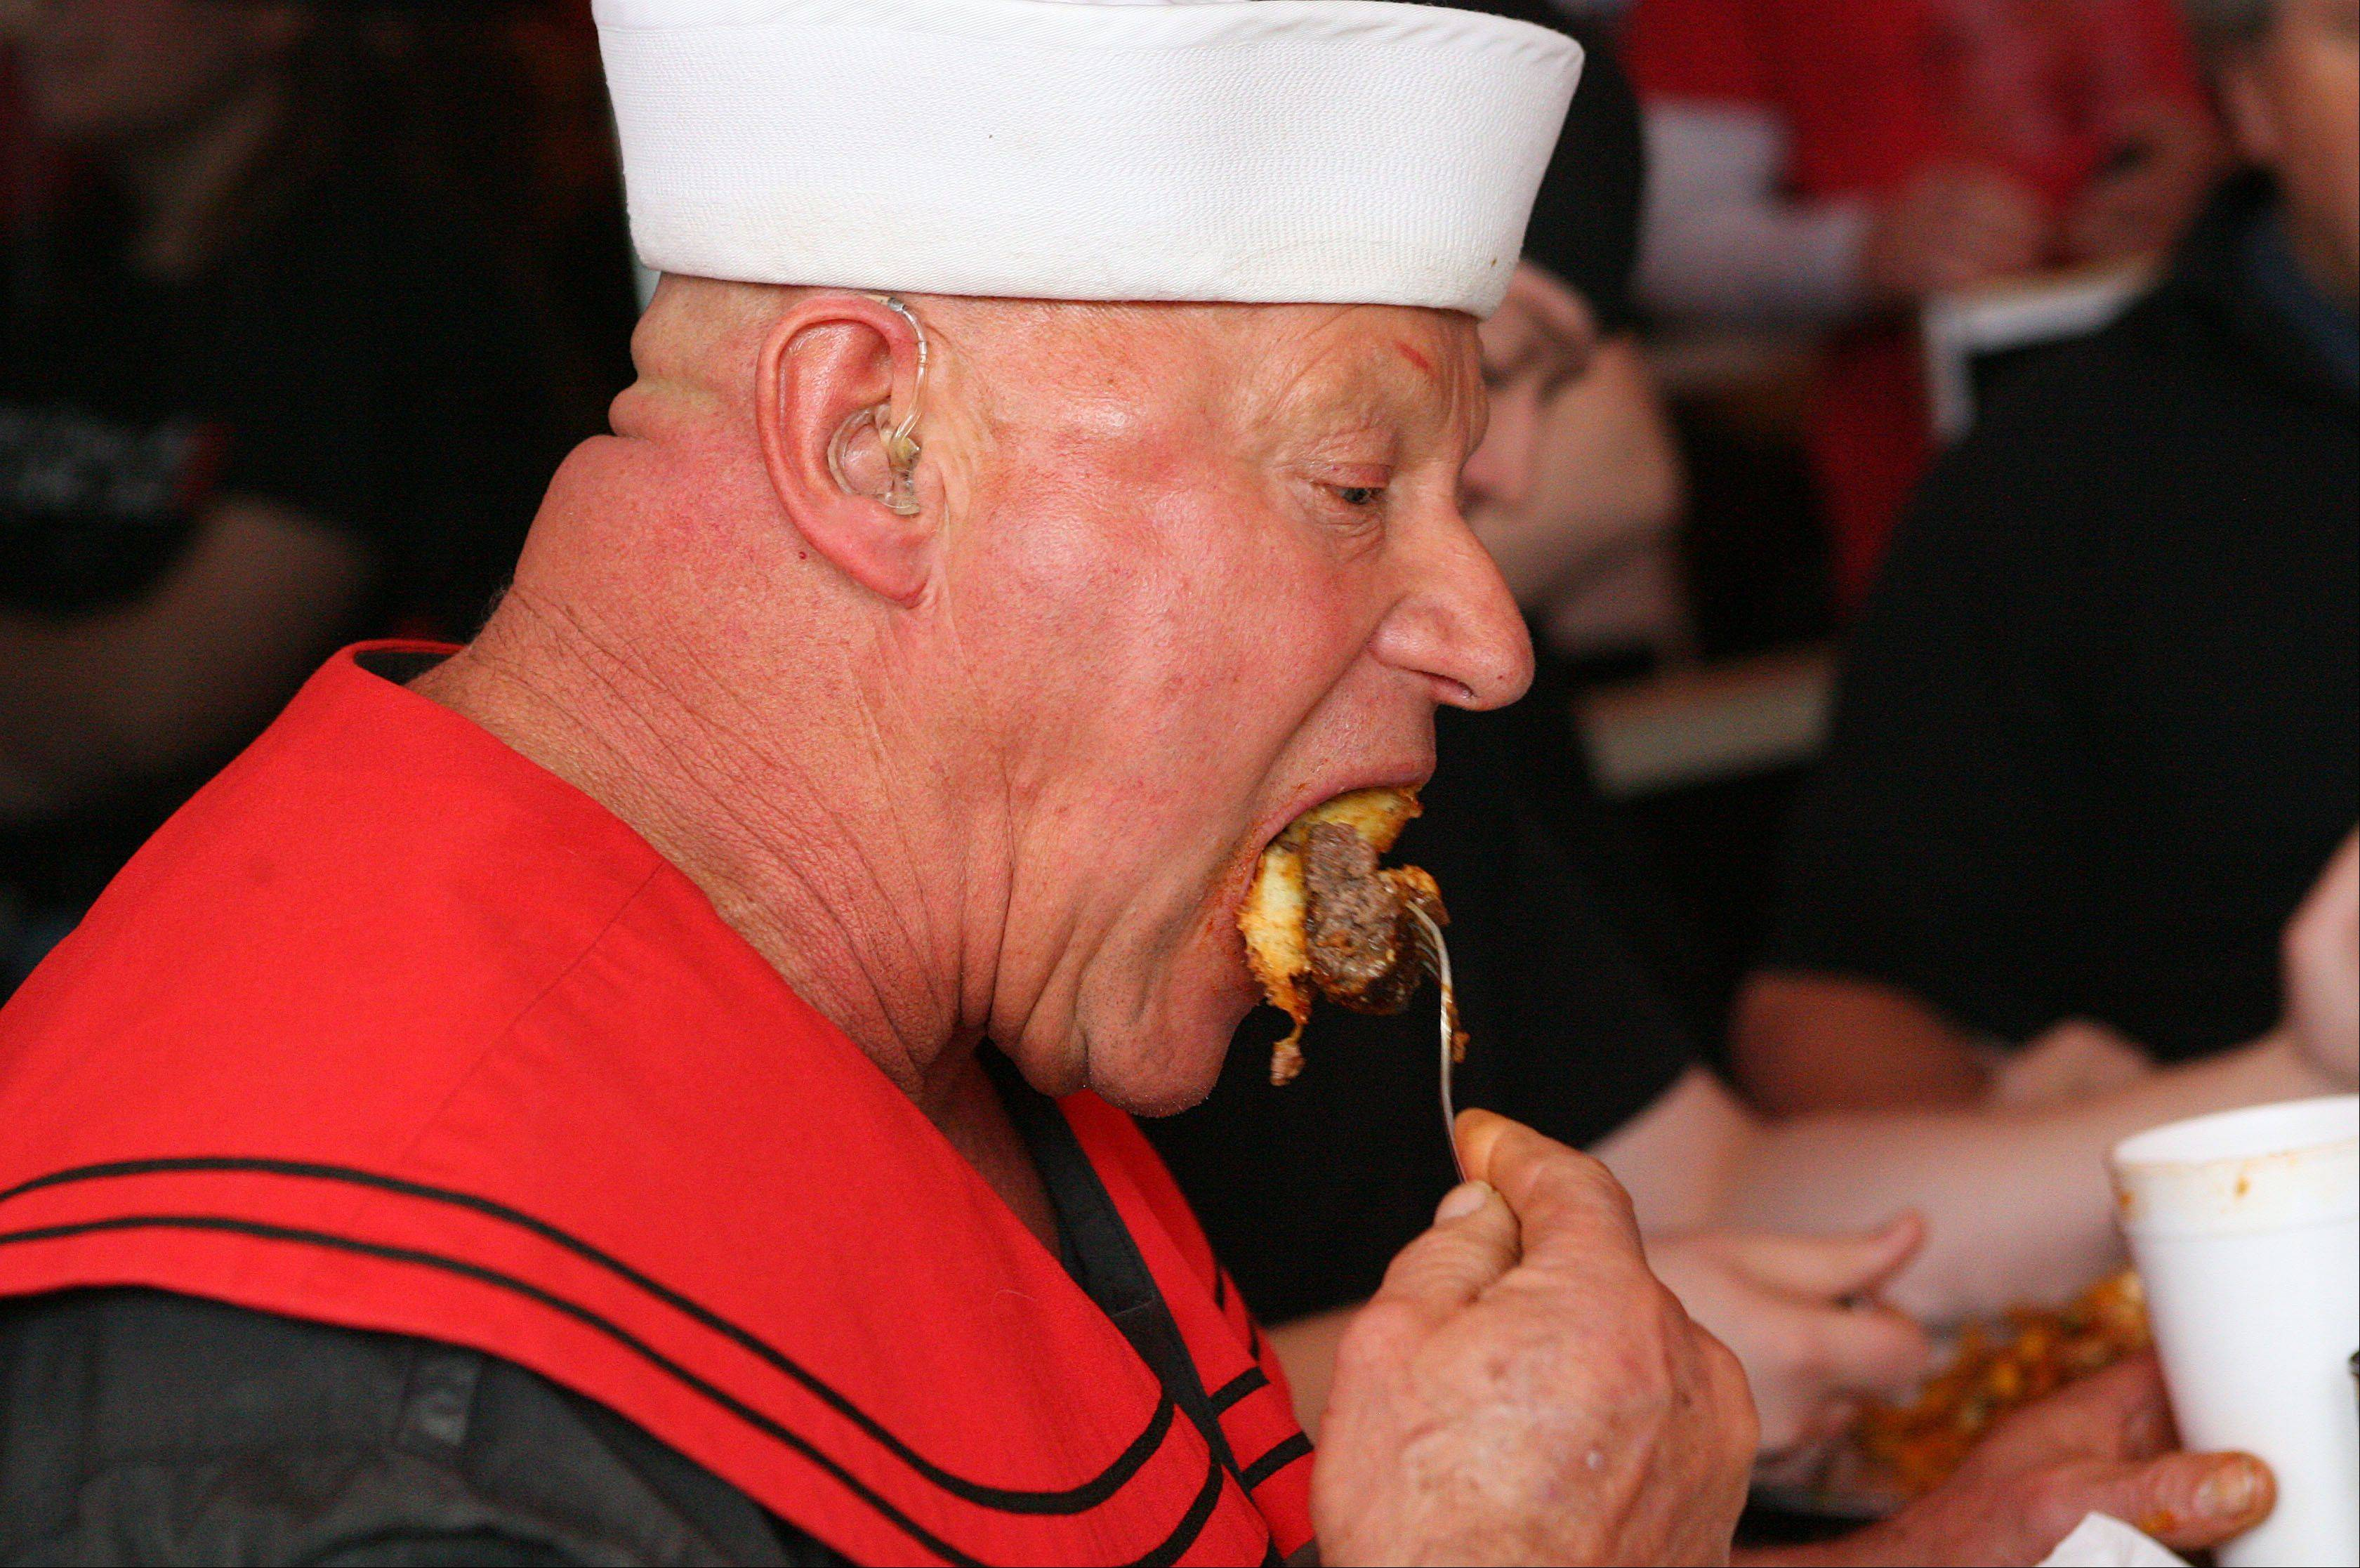 Alex Rothacker eats a four-pound hamburger in 19 minutes in an eating challenge in January at Bulldogs in Grayslake. The mammoth burger came with cheese, 12 slices of bacon and one pound of chili-cheese fries.